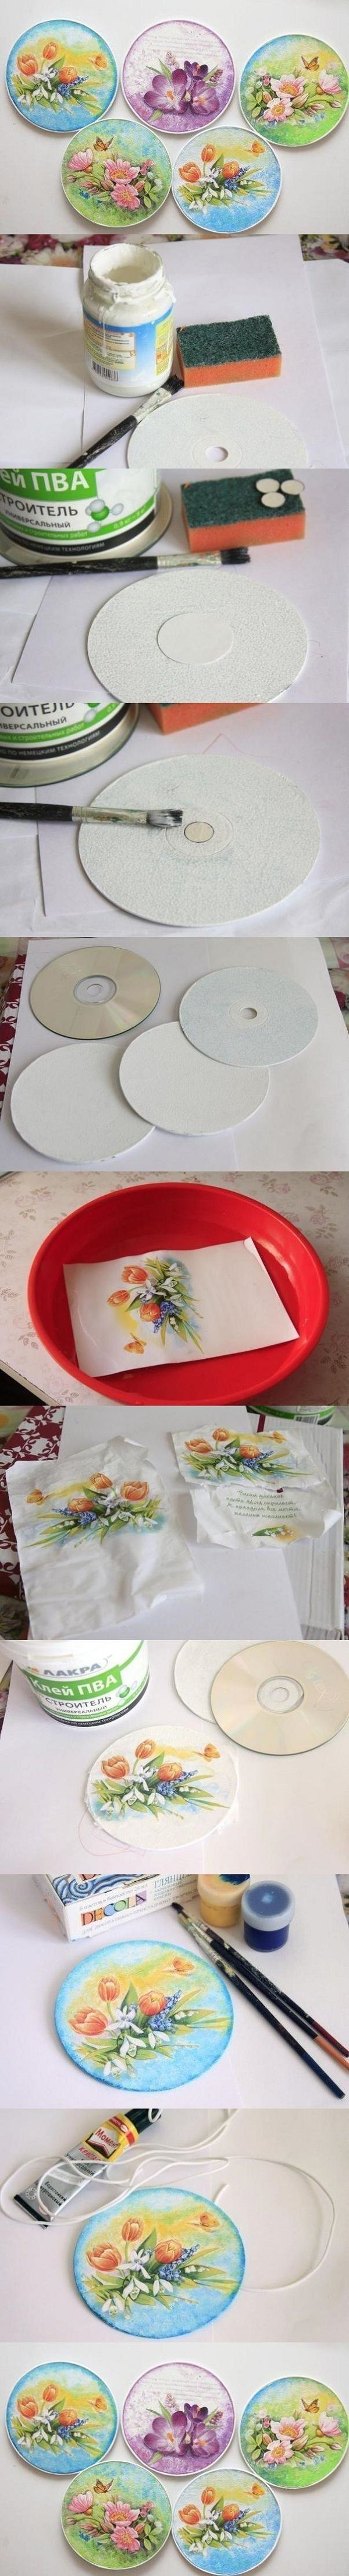 Nice Project Using Old CDs. Supply list doesn't mention that you also need some pretty napkins or fabric.And where it says varnish I would use Mod Podge.